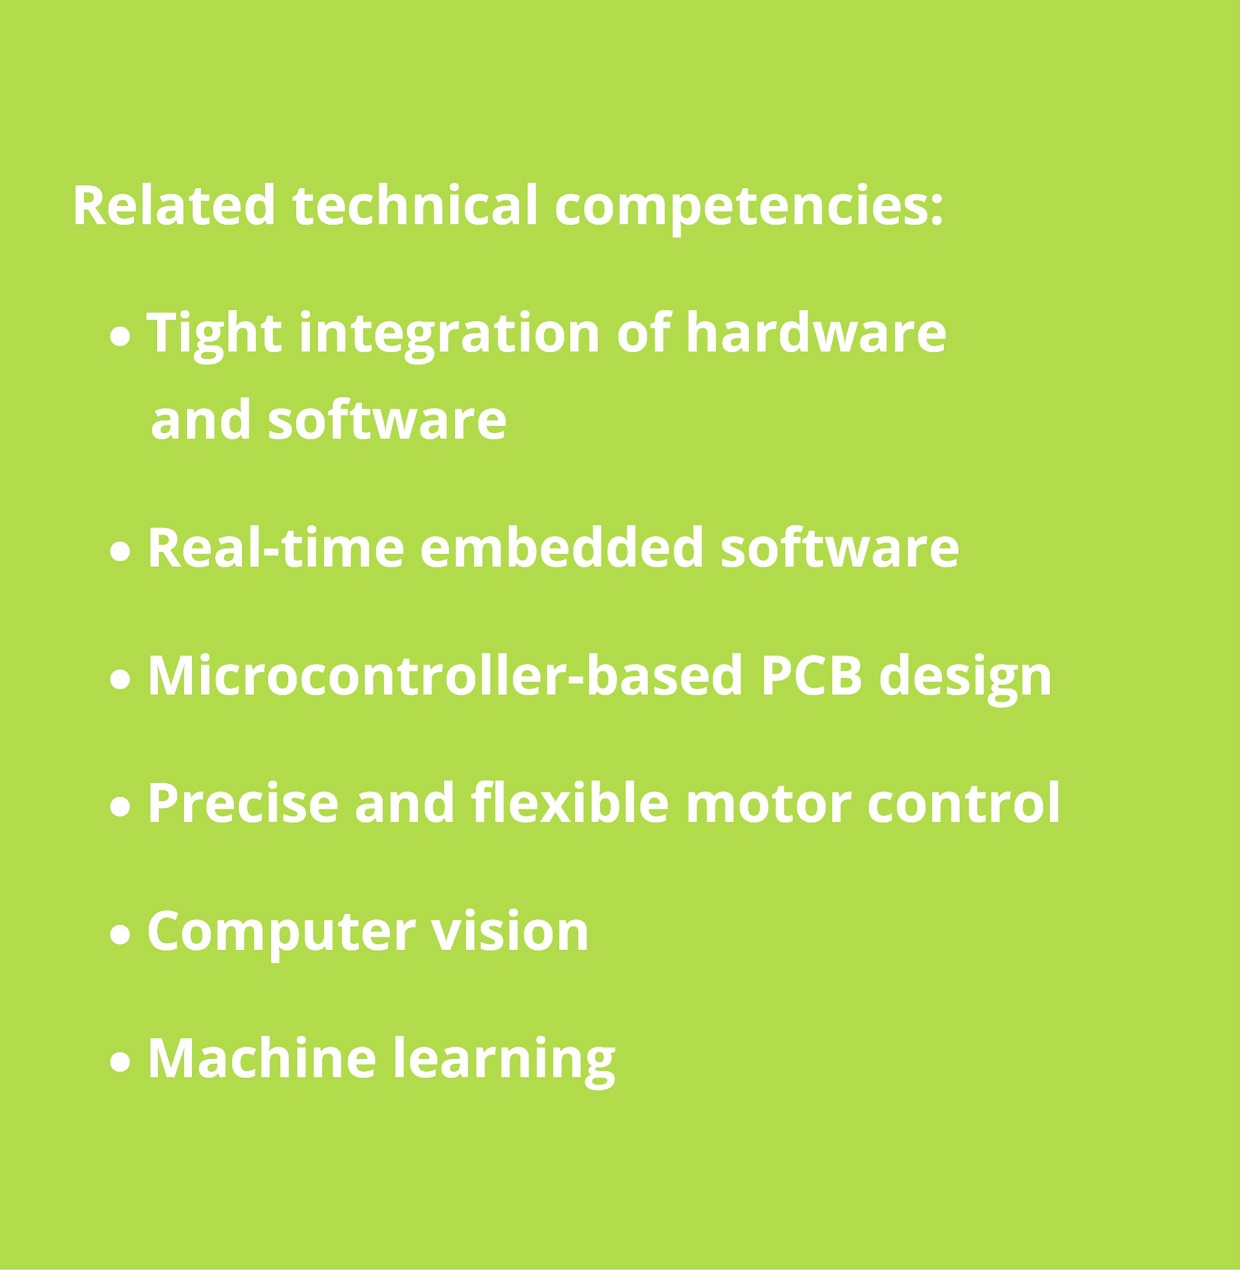 Mechatronics: tight integration of hardware and software; real-time embedded software; microcontroller-based PCB design; precise and flexible motor control; computer vision; machine learning